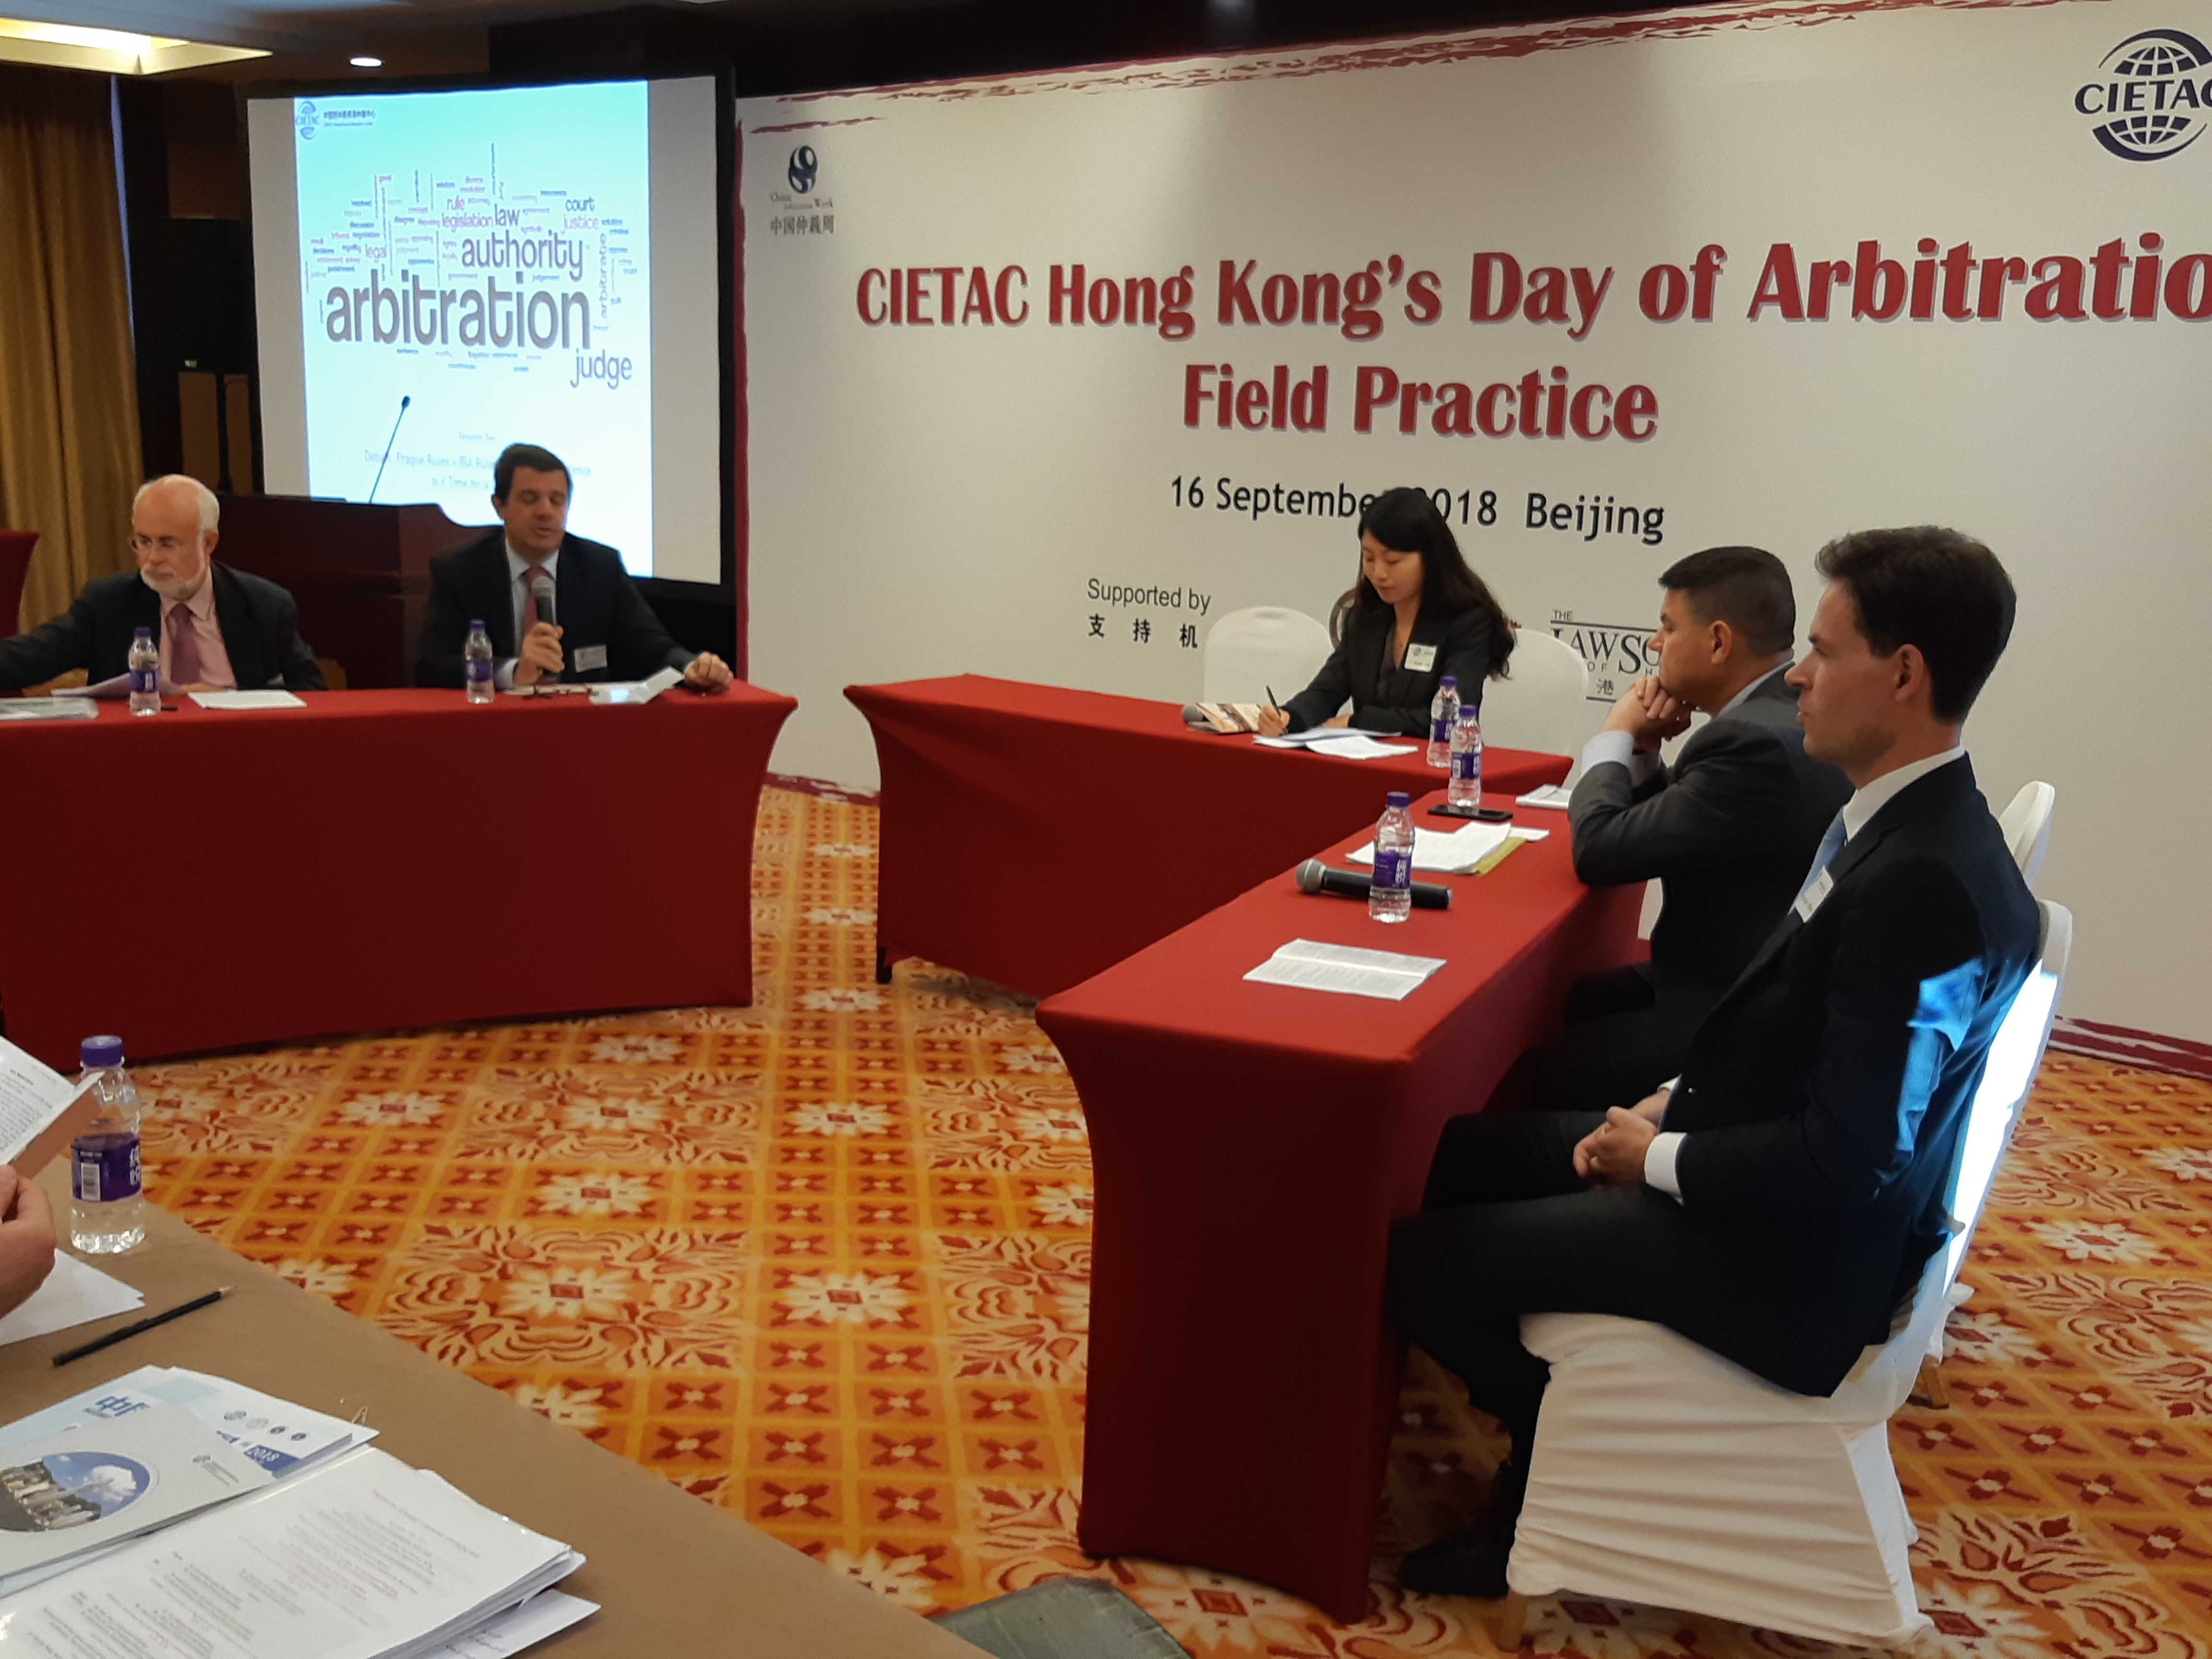 CIETAC Hong Kong's Day of Arbitration